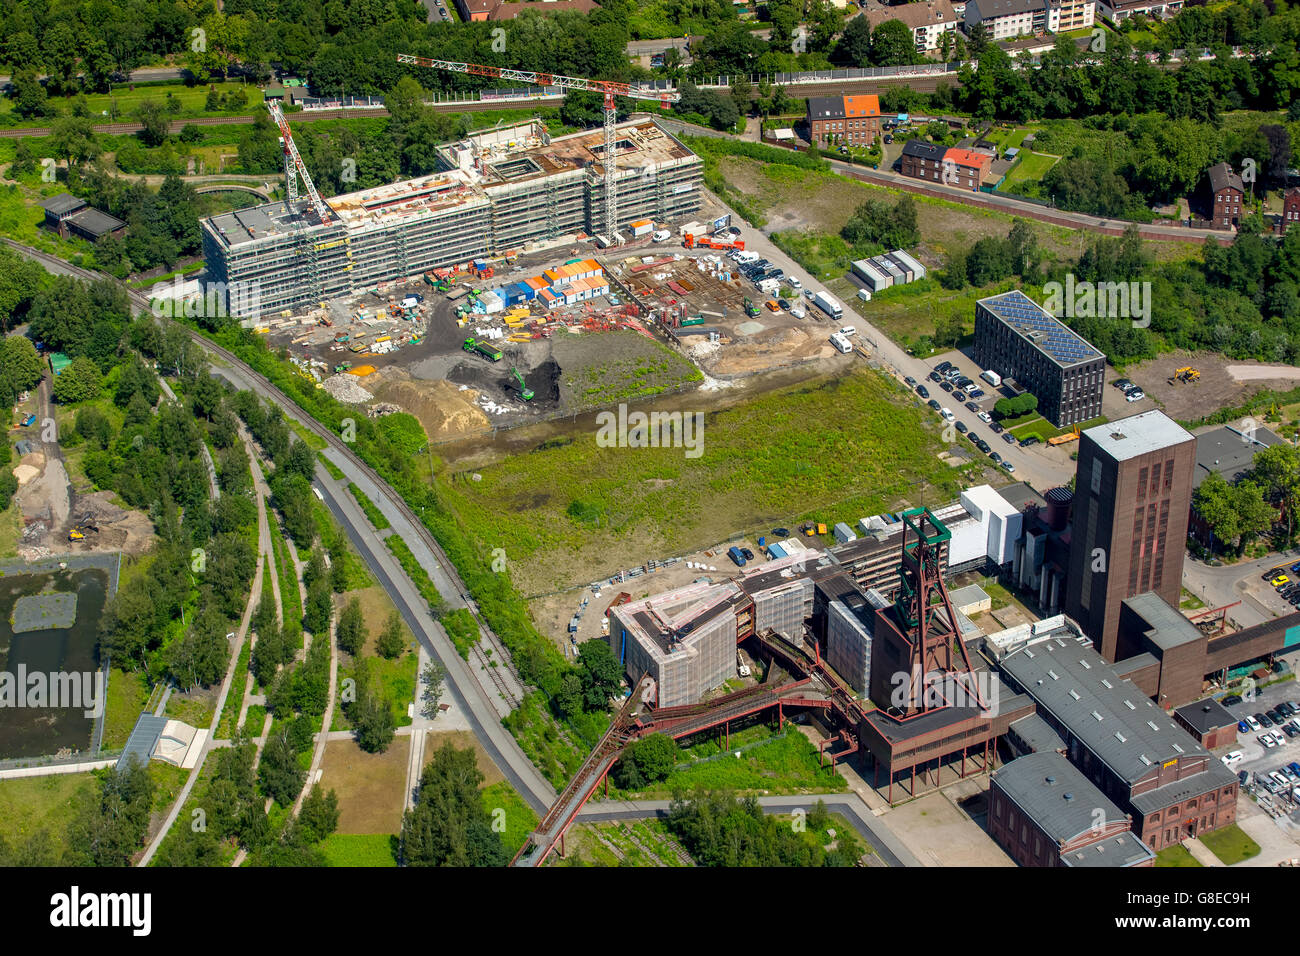 Aerial view, PACT Zollverein PACT Zollverein, construction of the Folkwang University of the Department of Design - Stock Image